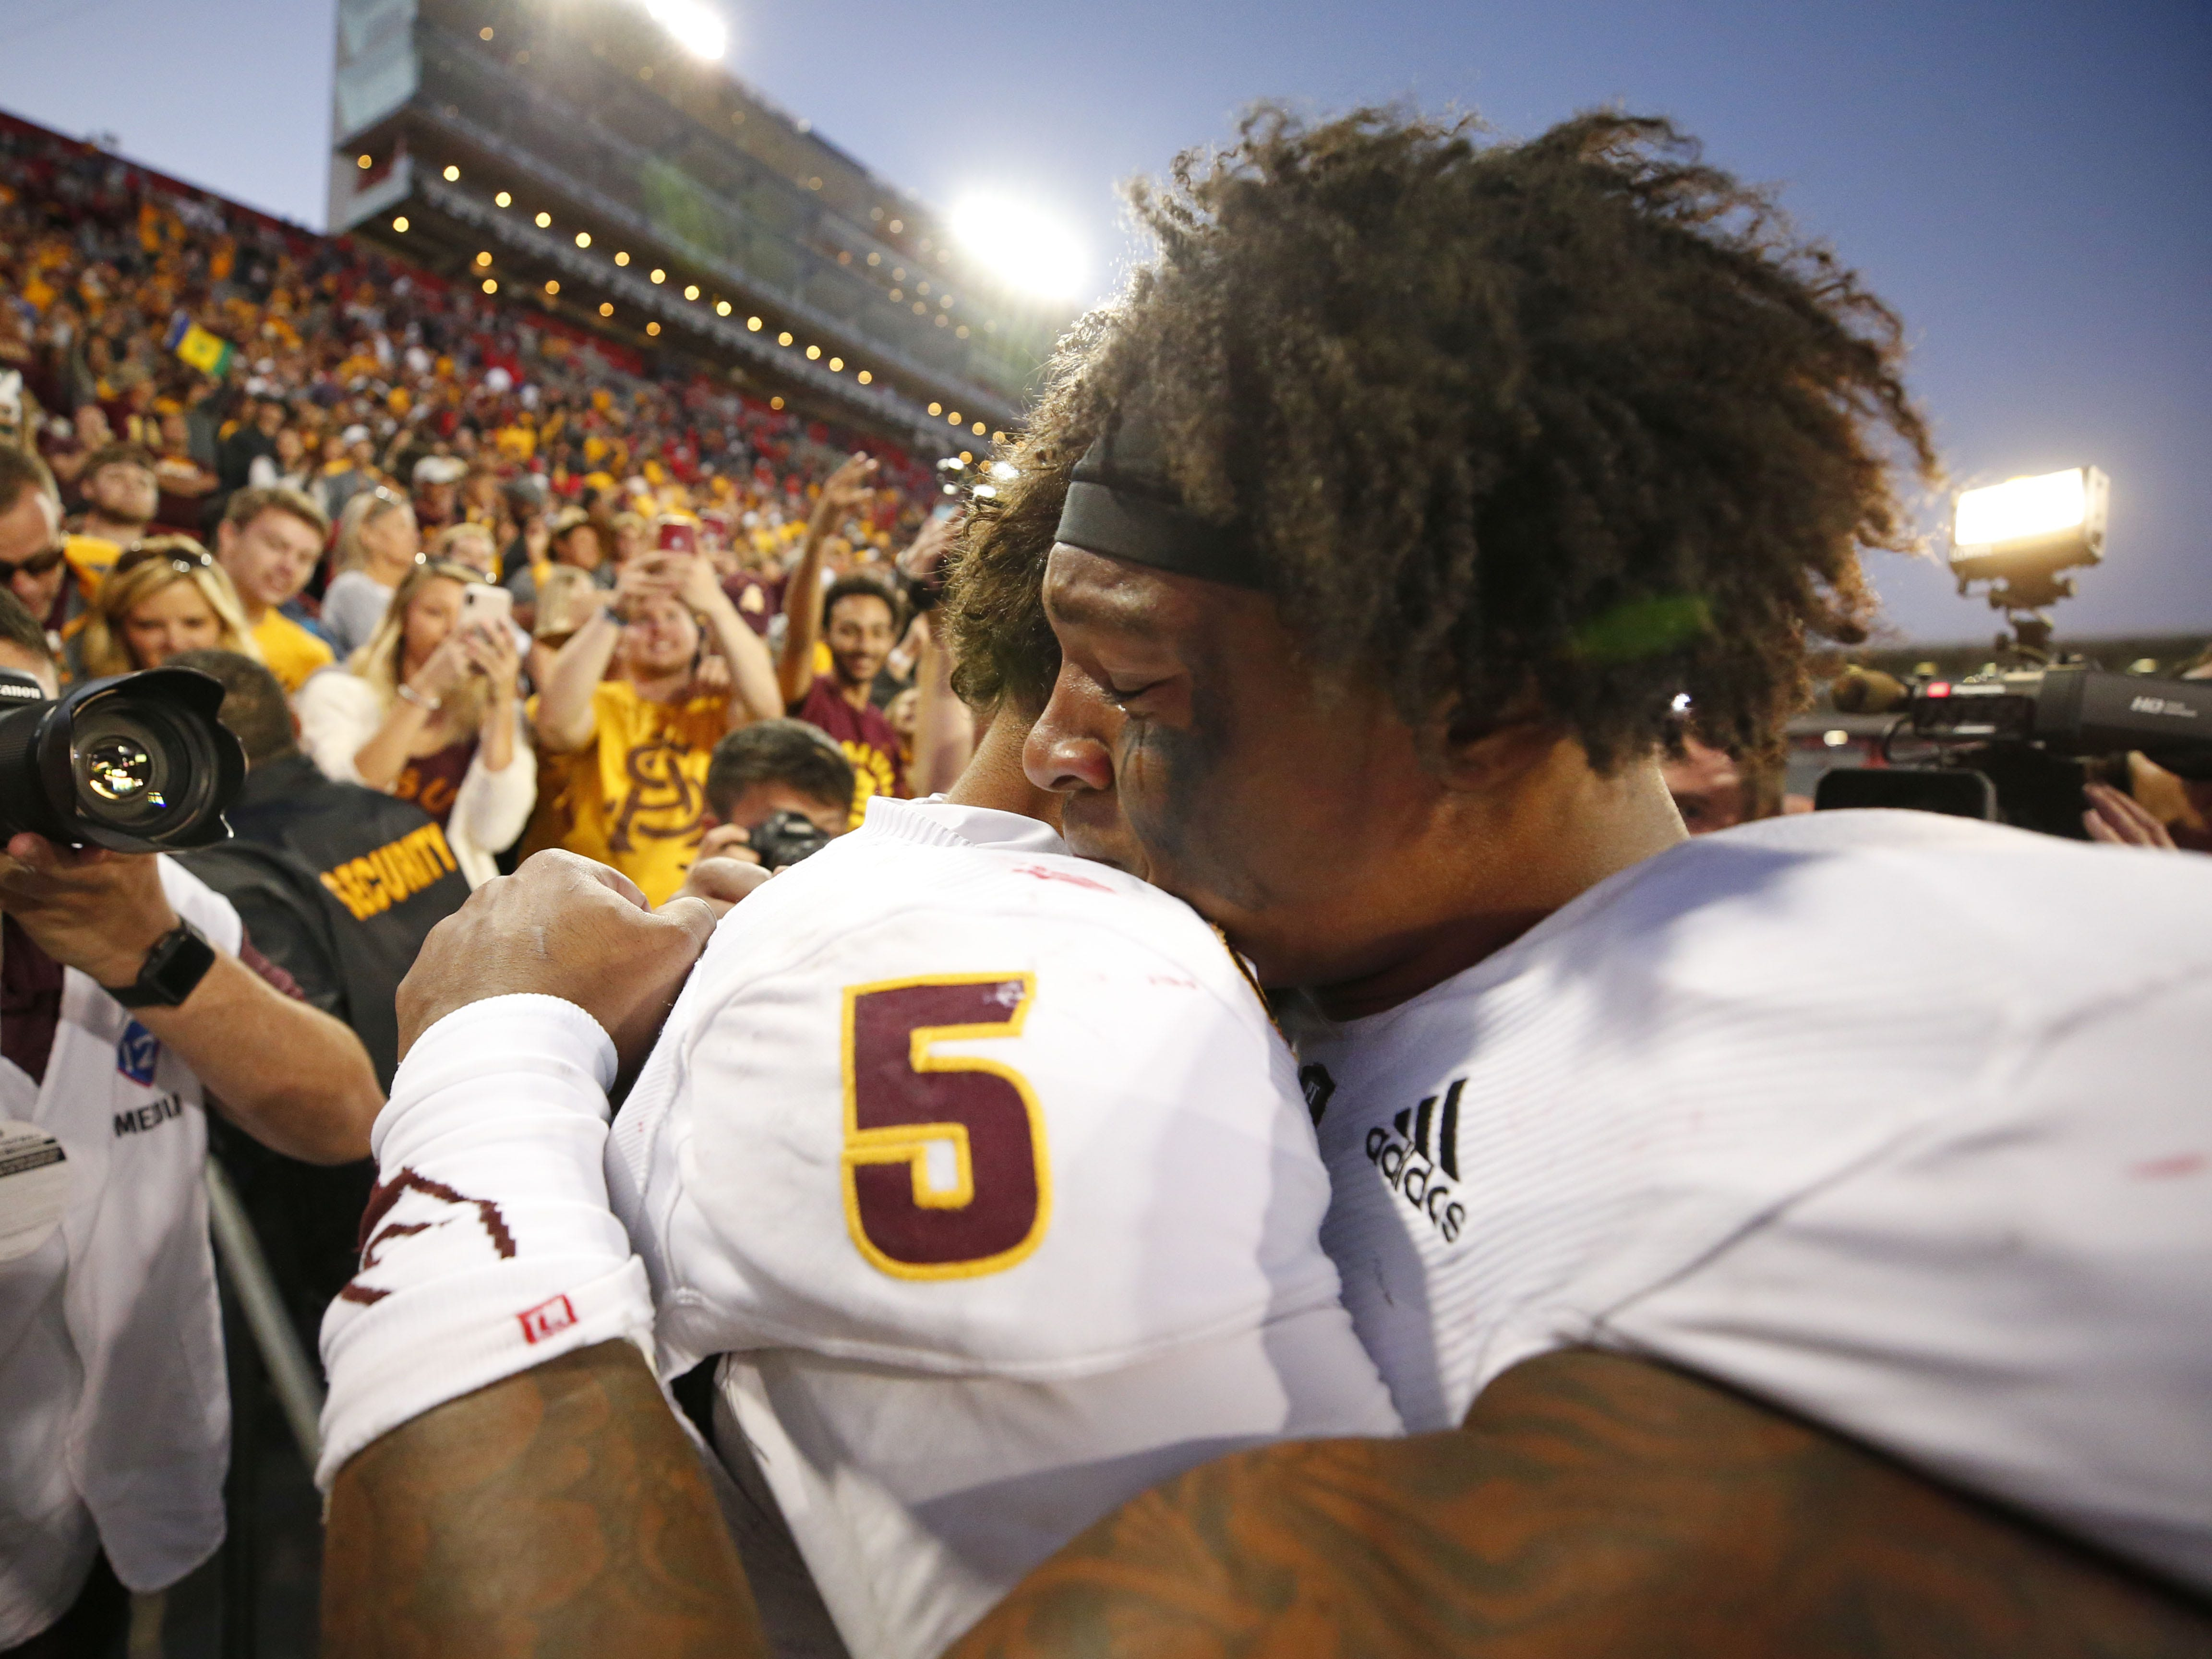 Arizona State Sun Devils quarterback Manny Wilkins (5) and Arizona State Sun Devils wide receiver N'Keal Harry (1) have an emotional moment after winning the Territorial Cup football game against the Arizona Wildcats at Arizona Stadium in Tucson on November 24.